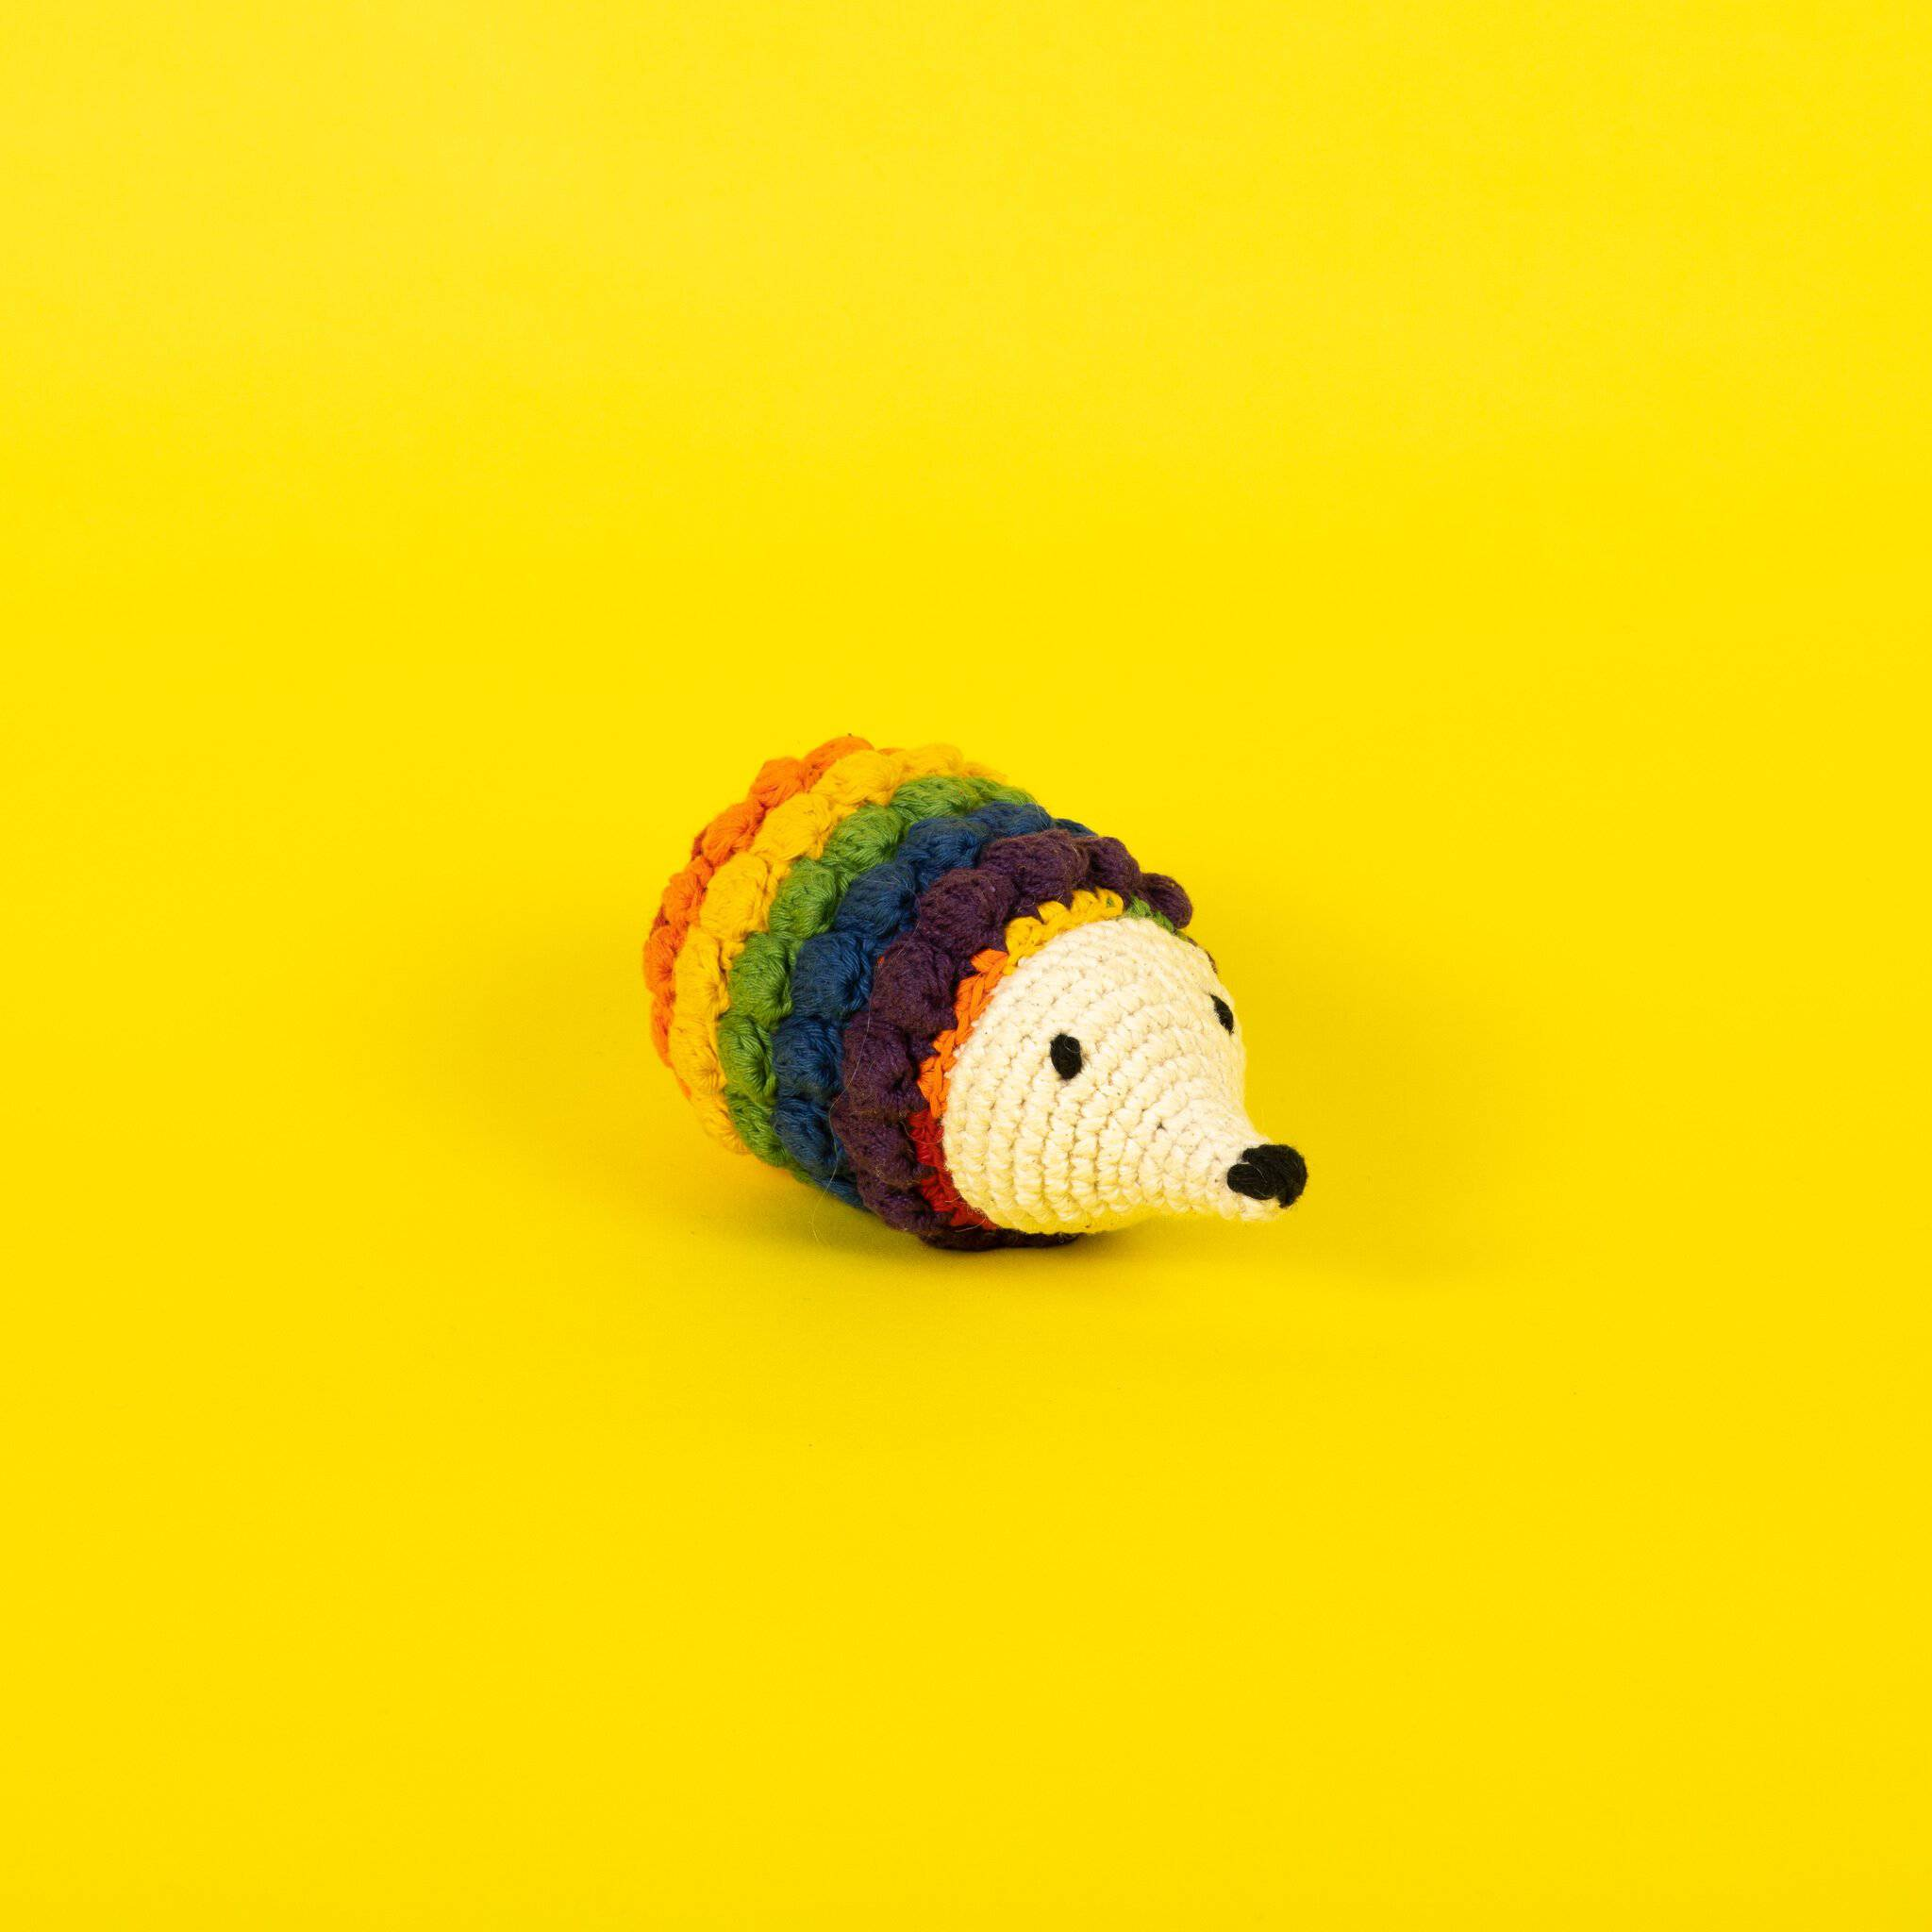 Hedgehog Crochet Toy - Holler Brighton